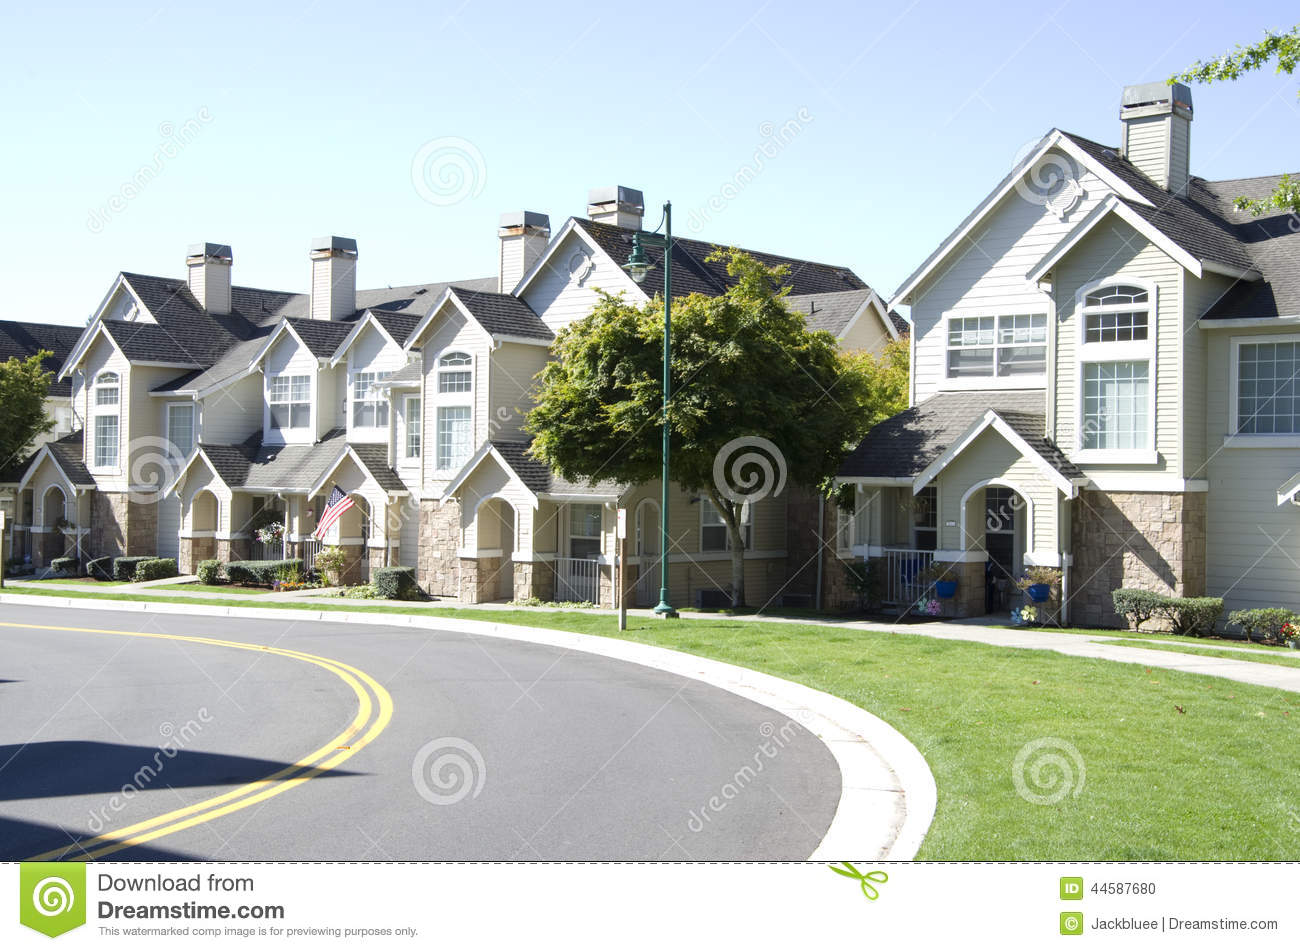 New american dream homes stock photo image 44587680 for American dream home builders